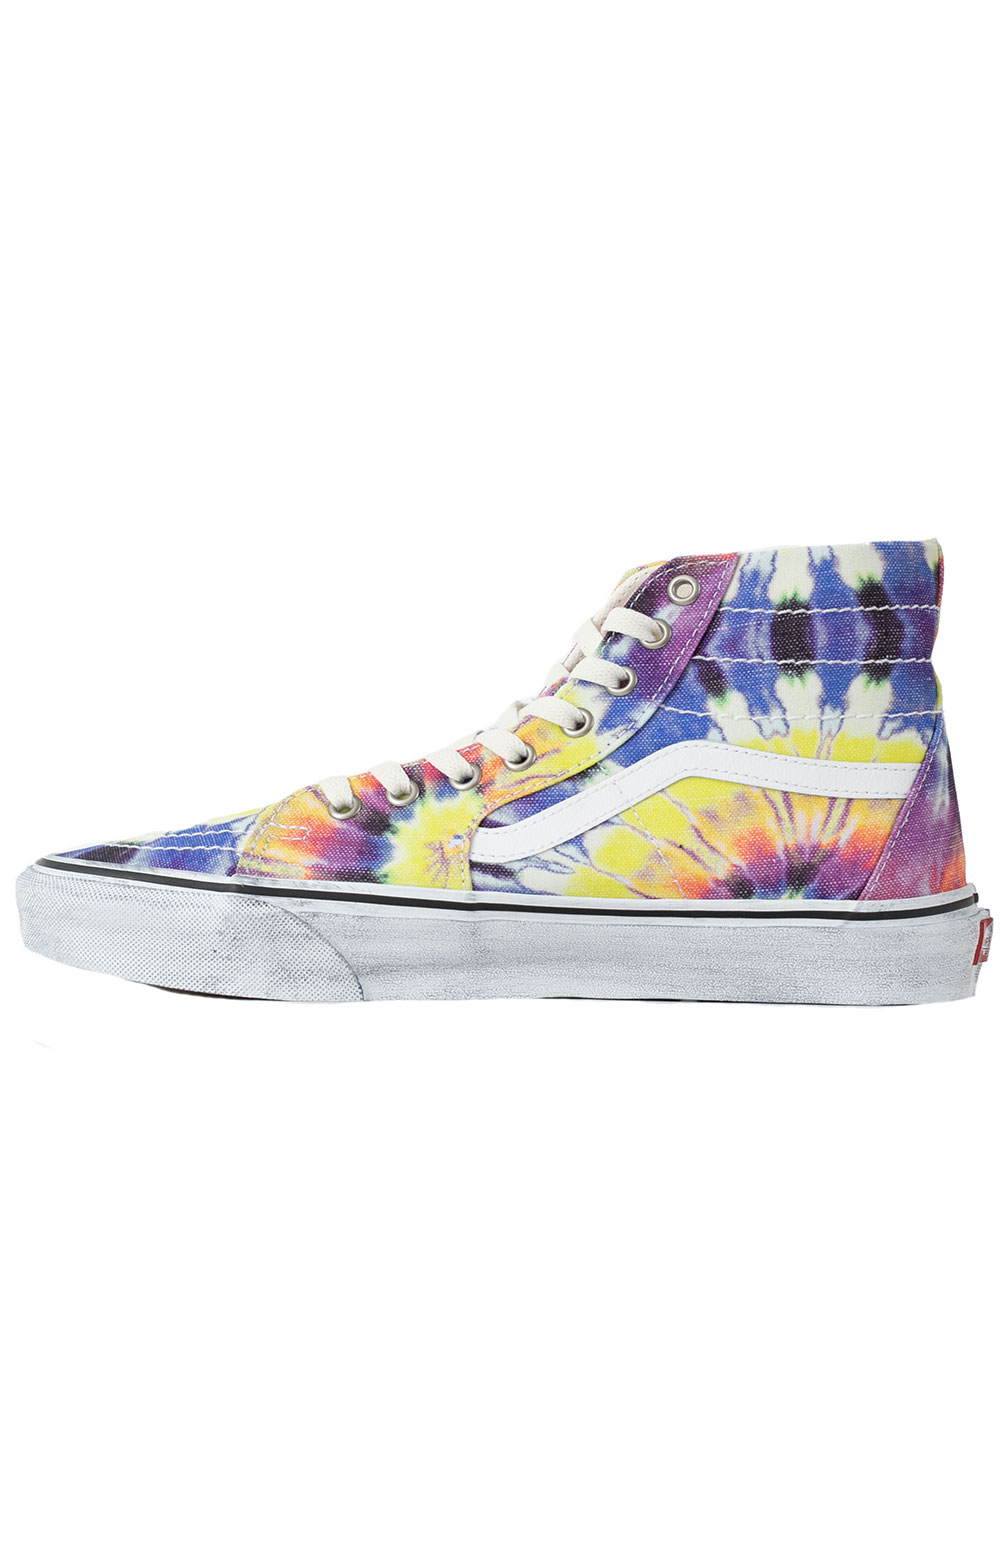 (U1619X) Washed Sk8-Hi Tapered Shoes - Tie-Dye/True White  5